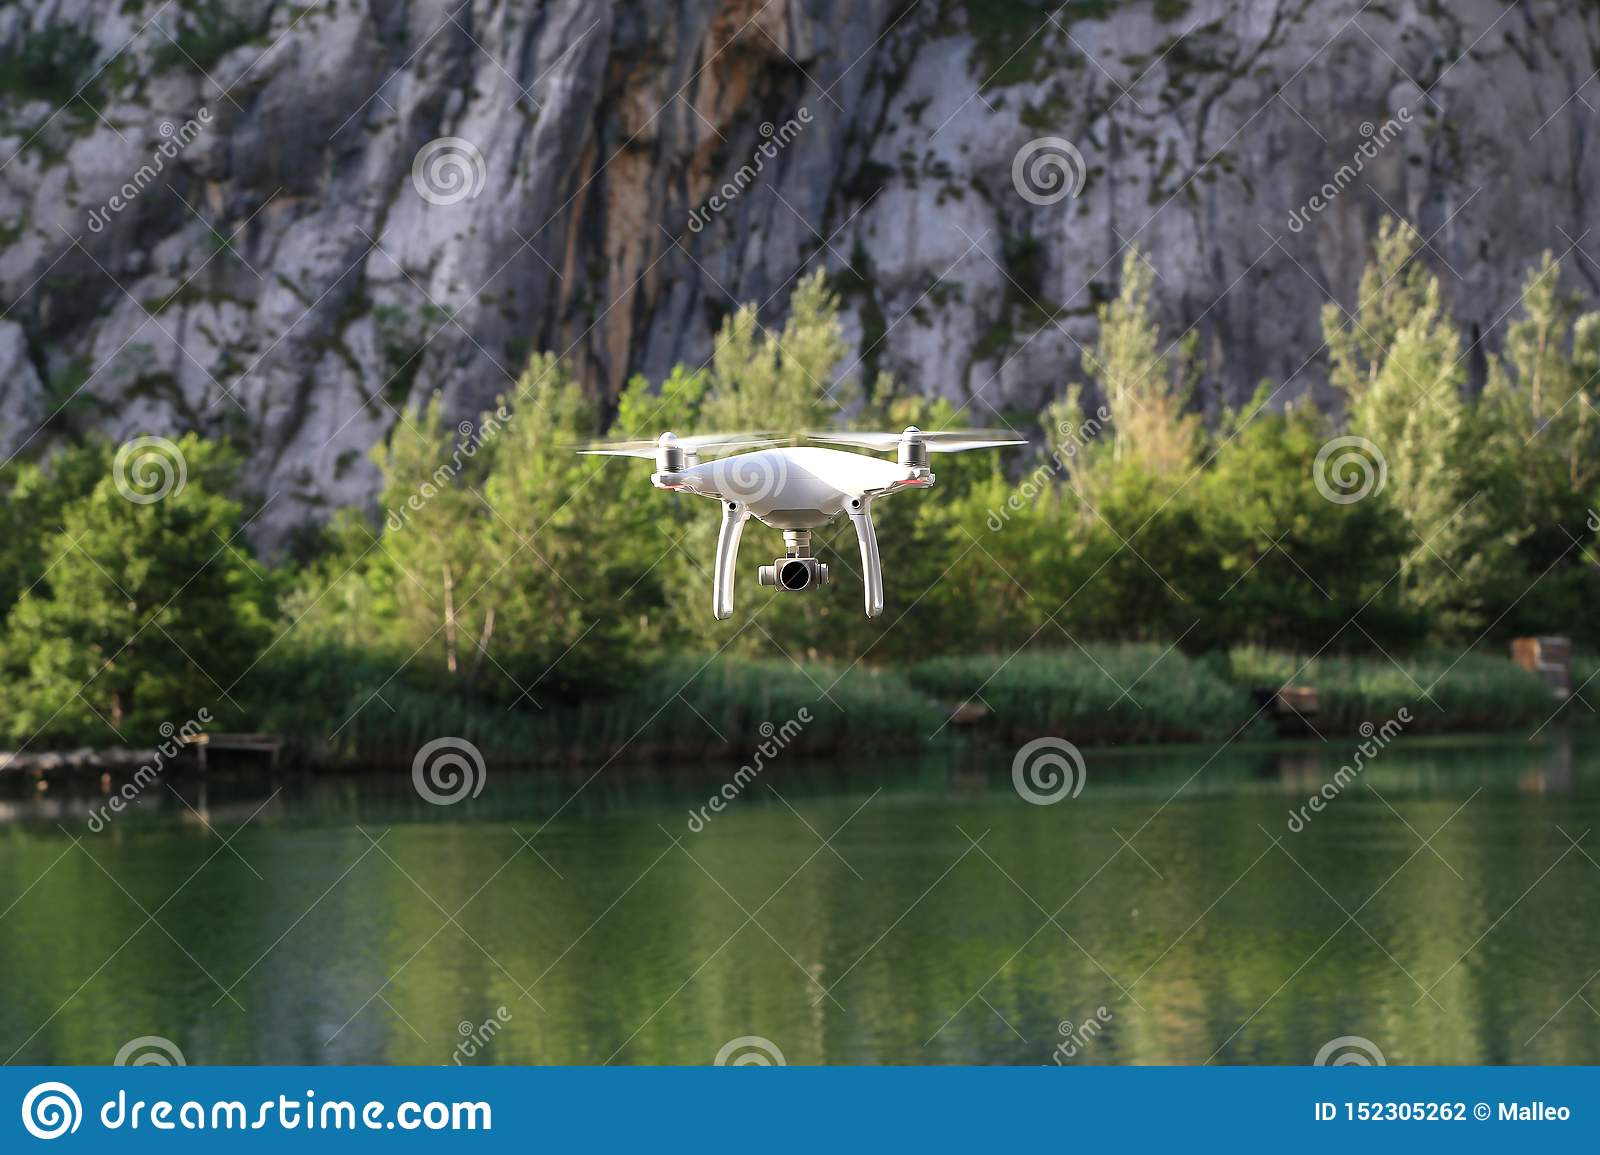 Drone flies low above water on lake